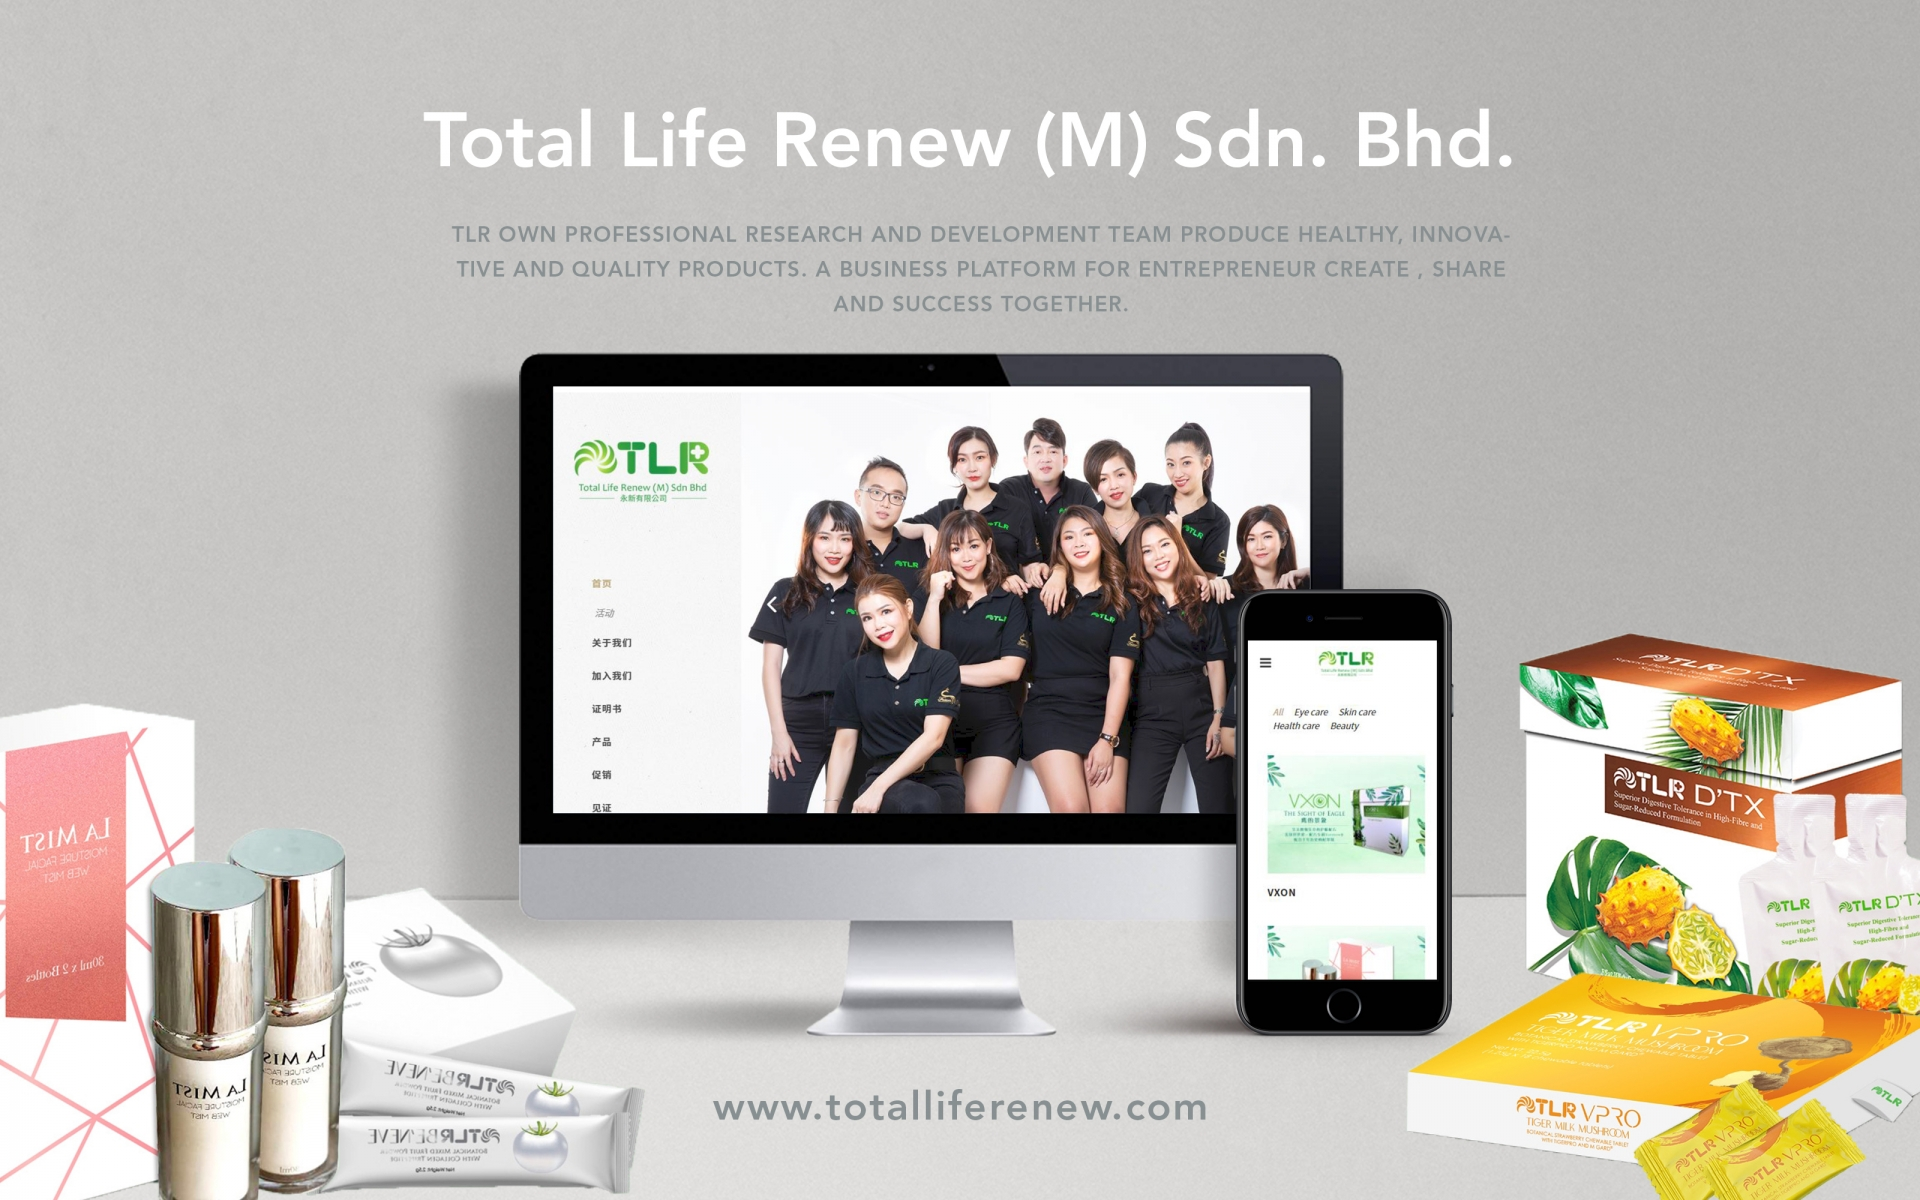 "<a href=""http://welcome.totalliferenew.com/"" target=""_blank"">Total Life Renew  (M) Sdn. Bhd.</a>"